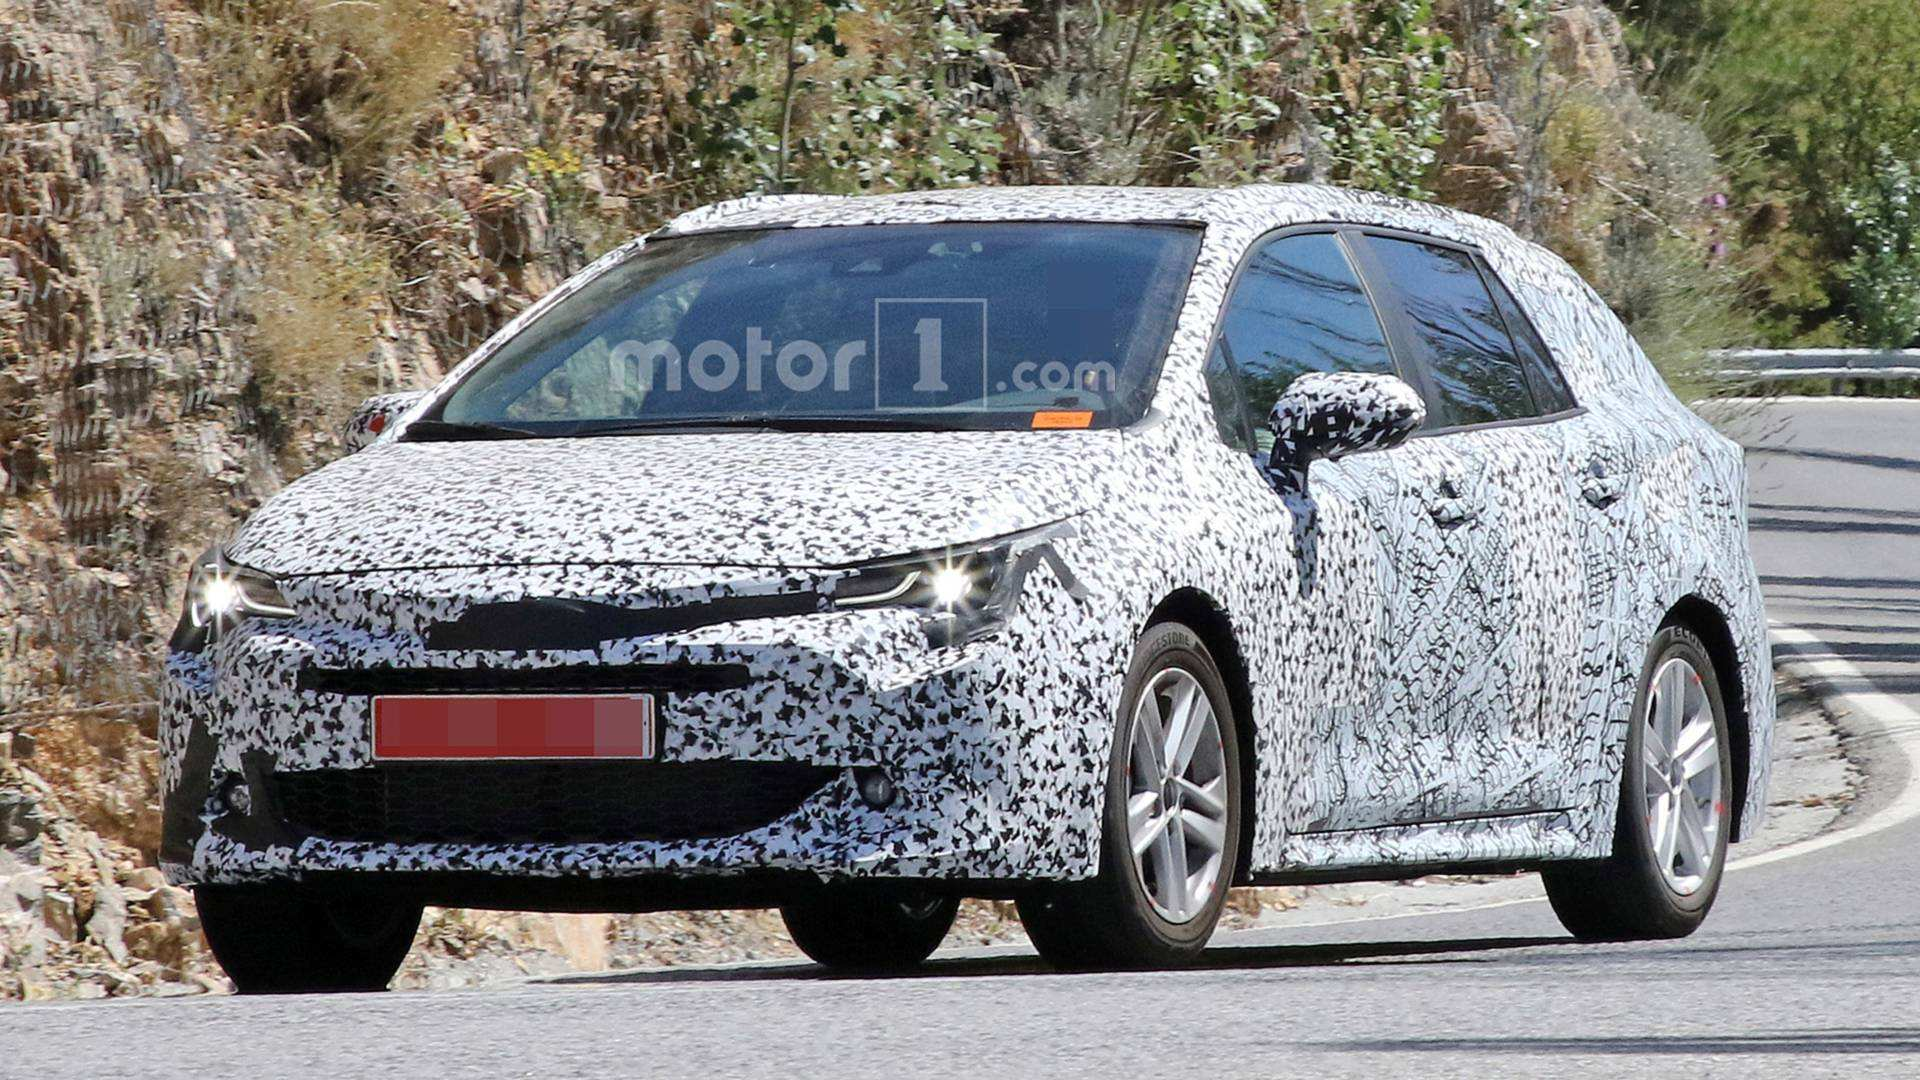 69 New 2019 New Toyota Avensis Spy Shots Concept